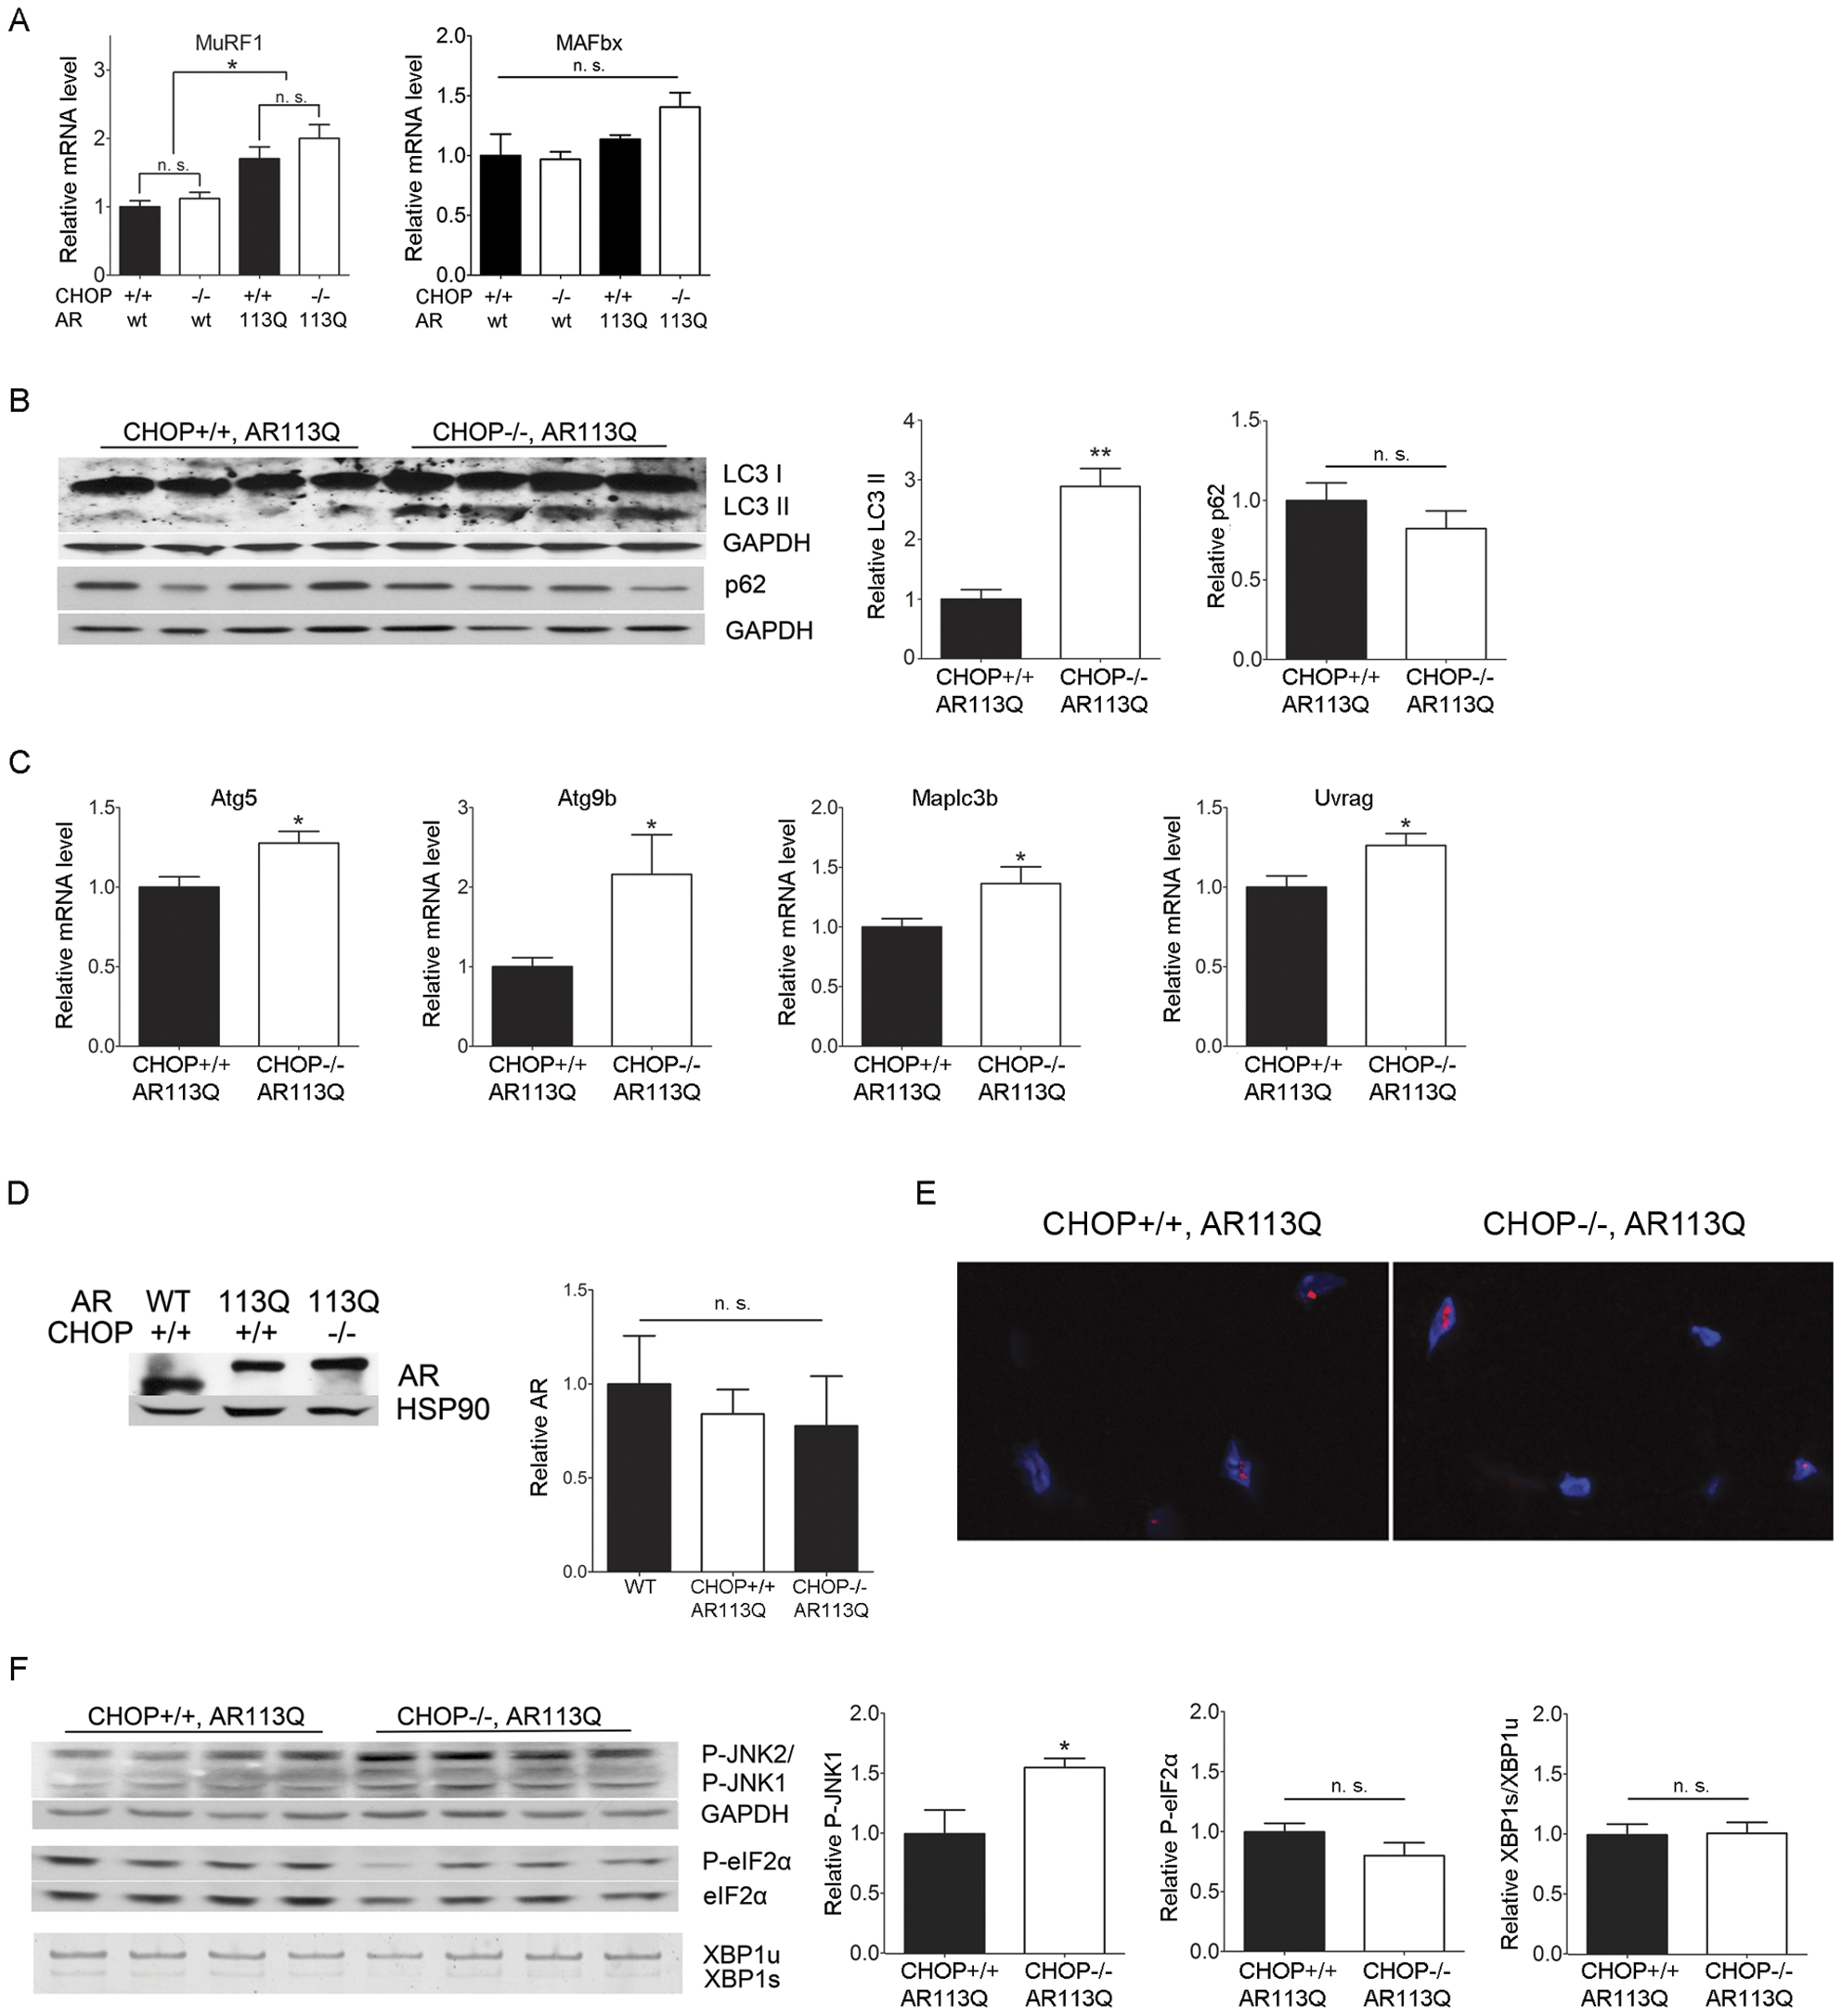 Autophagy is increased in AR113Q, CHOP −/− muscle.